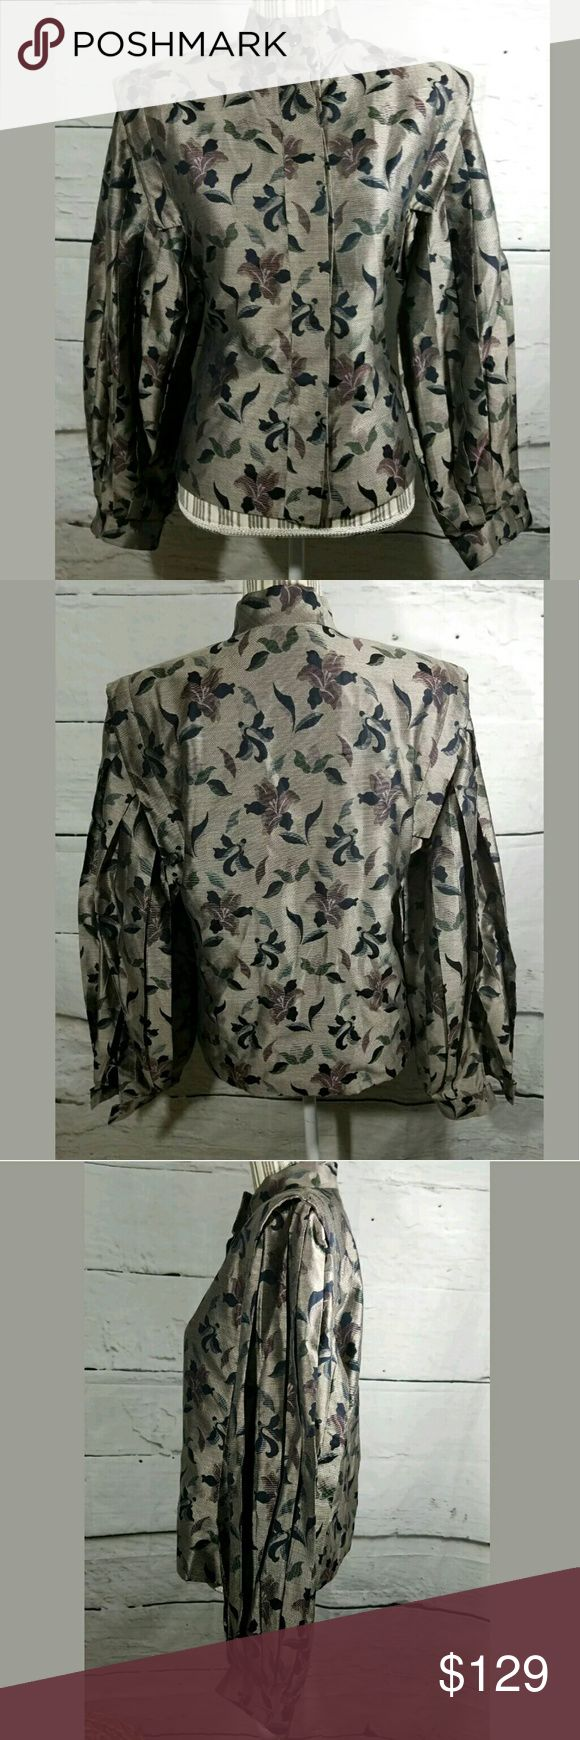 Salvatore Ferragamo Long Balloon Sleeve Silk Top Salvatore Ferragamo Long Balloon Sleeve 100% Silk Couture Floral Blouse   Excellent used condition. No holes or stains. Minor snags/pulls that are not very noticeable.  Lightly padded shoulders. Gorgeous pleated sleeves.   19 inches pit to pit.  24 inches long.   LB Salvatore Ferragamo Tops Blouses